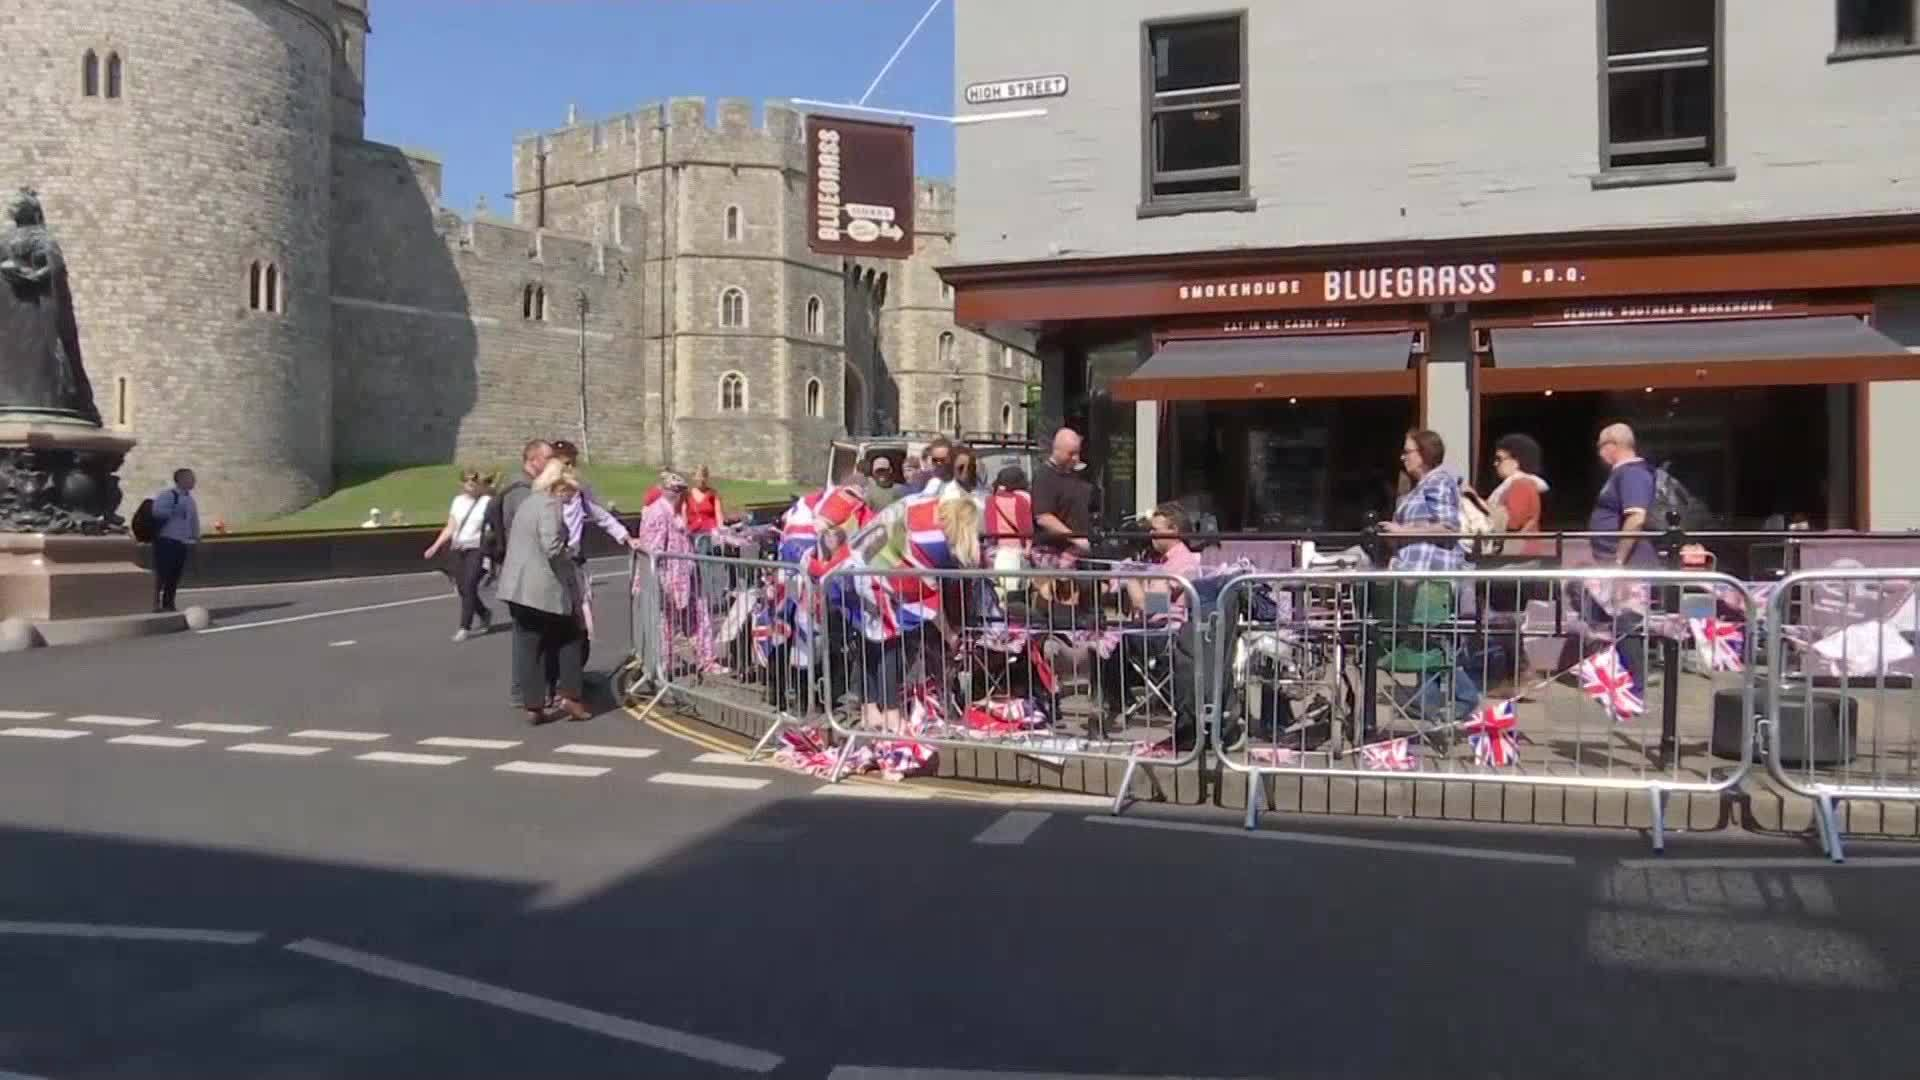 Royal_wedding_superfans_camp_out_0_20180516145903